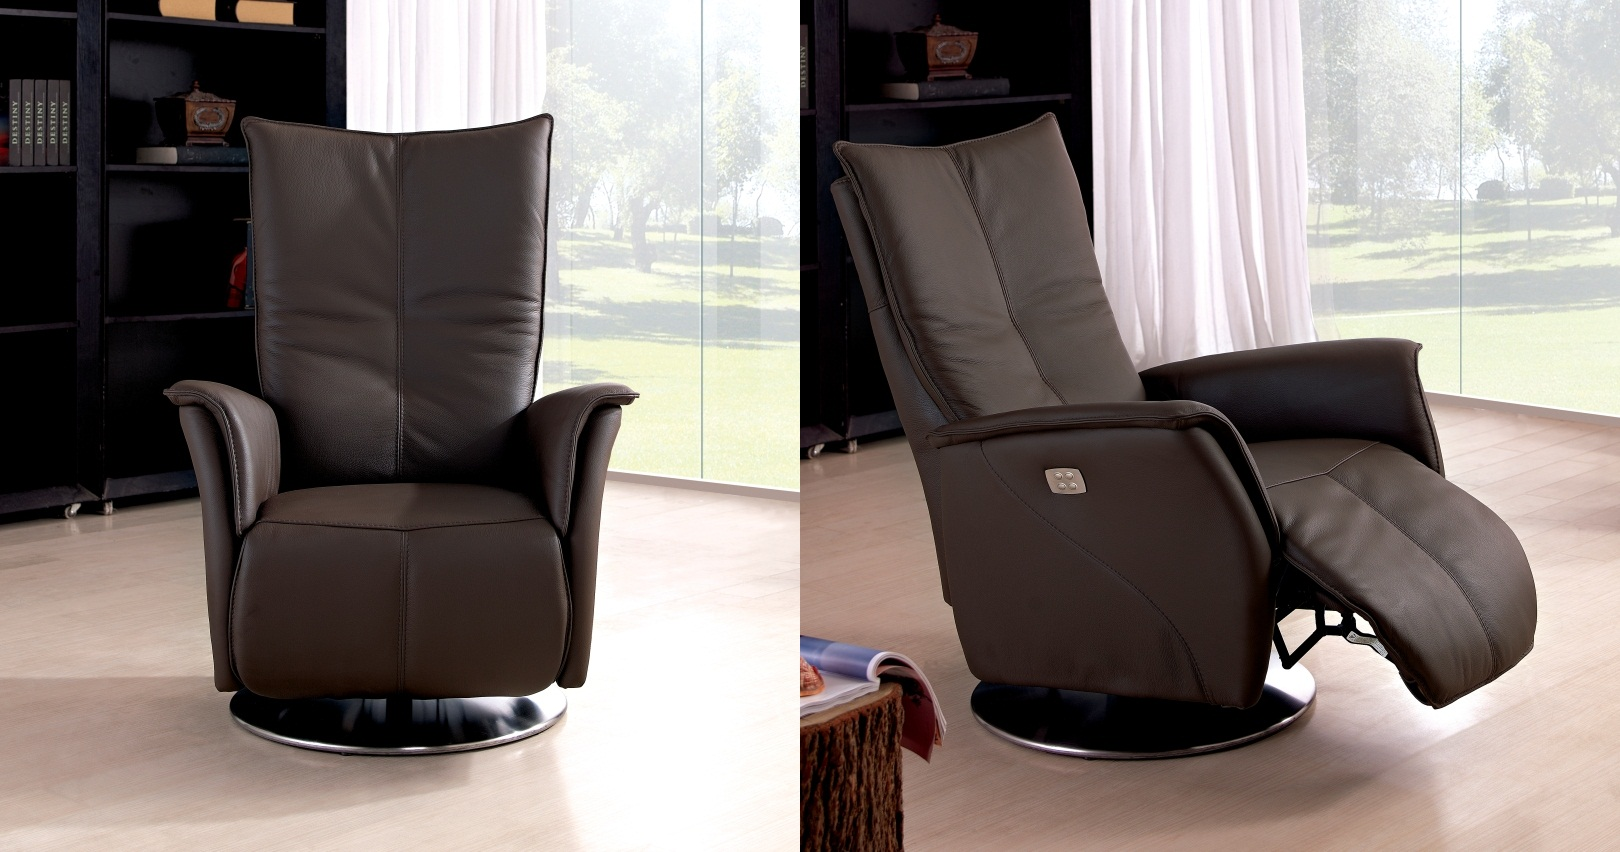 seychelles fauteuil relaxation electrique bi moteur sur univers du cuir. Black Bedroom Furniture Sets. Home Design Ideas